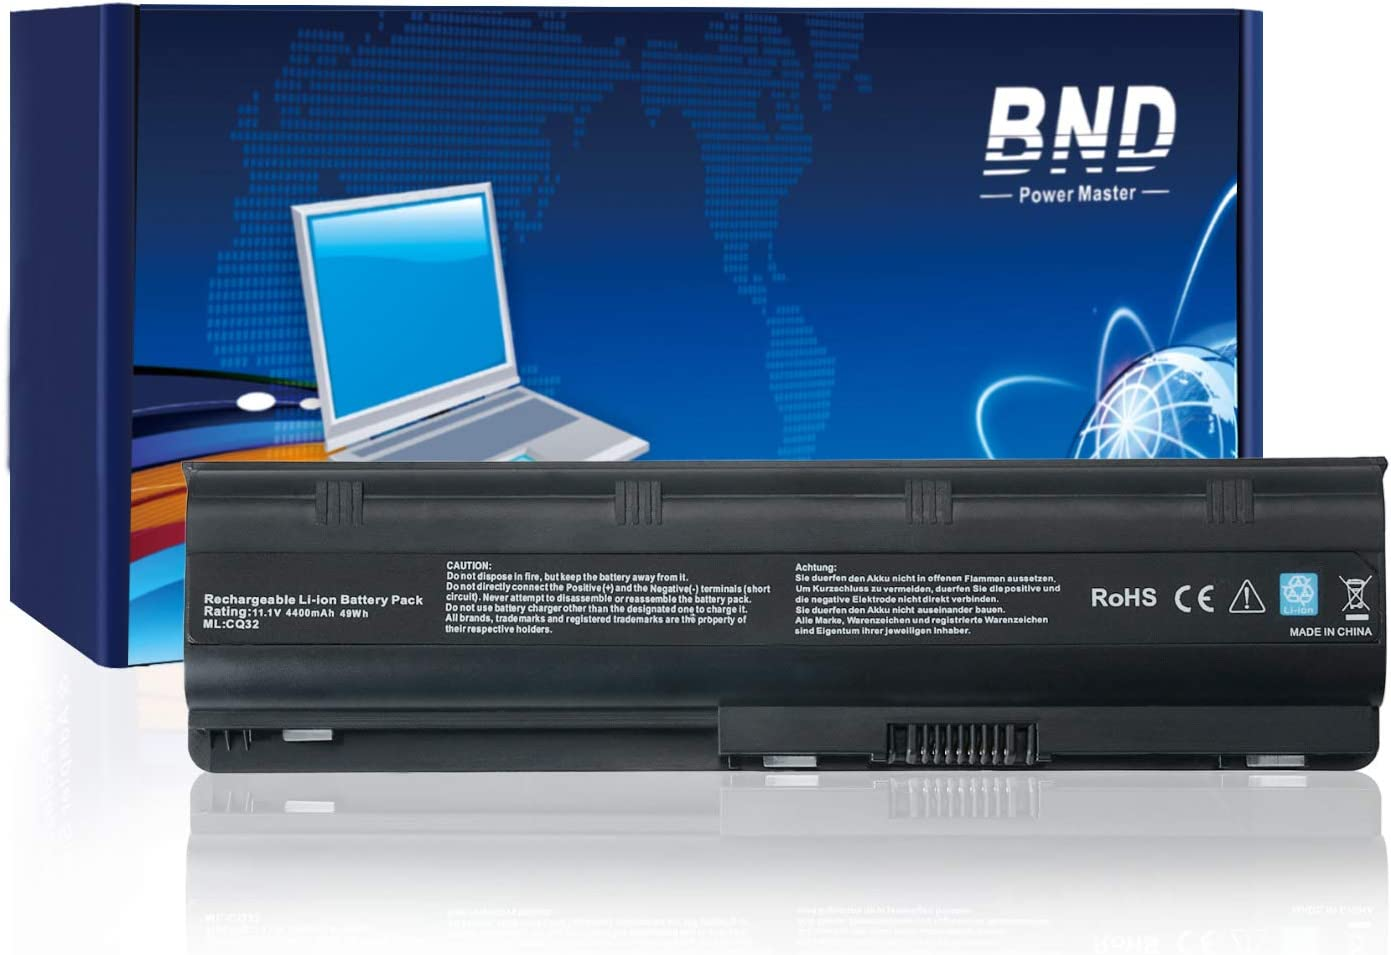 BND MU06 593553-001 Laptop Battery Compatible with HP Compaq Presario CQ72 CQ62 CQ57 CQ56 CQ42 CQ32-12 Months Warranty[6-Cell 4400mAh/48Wh]